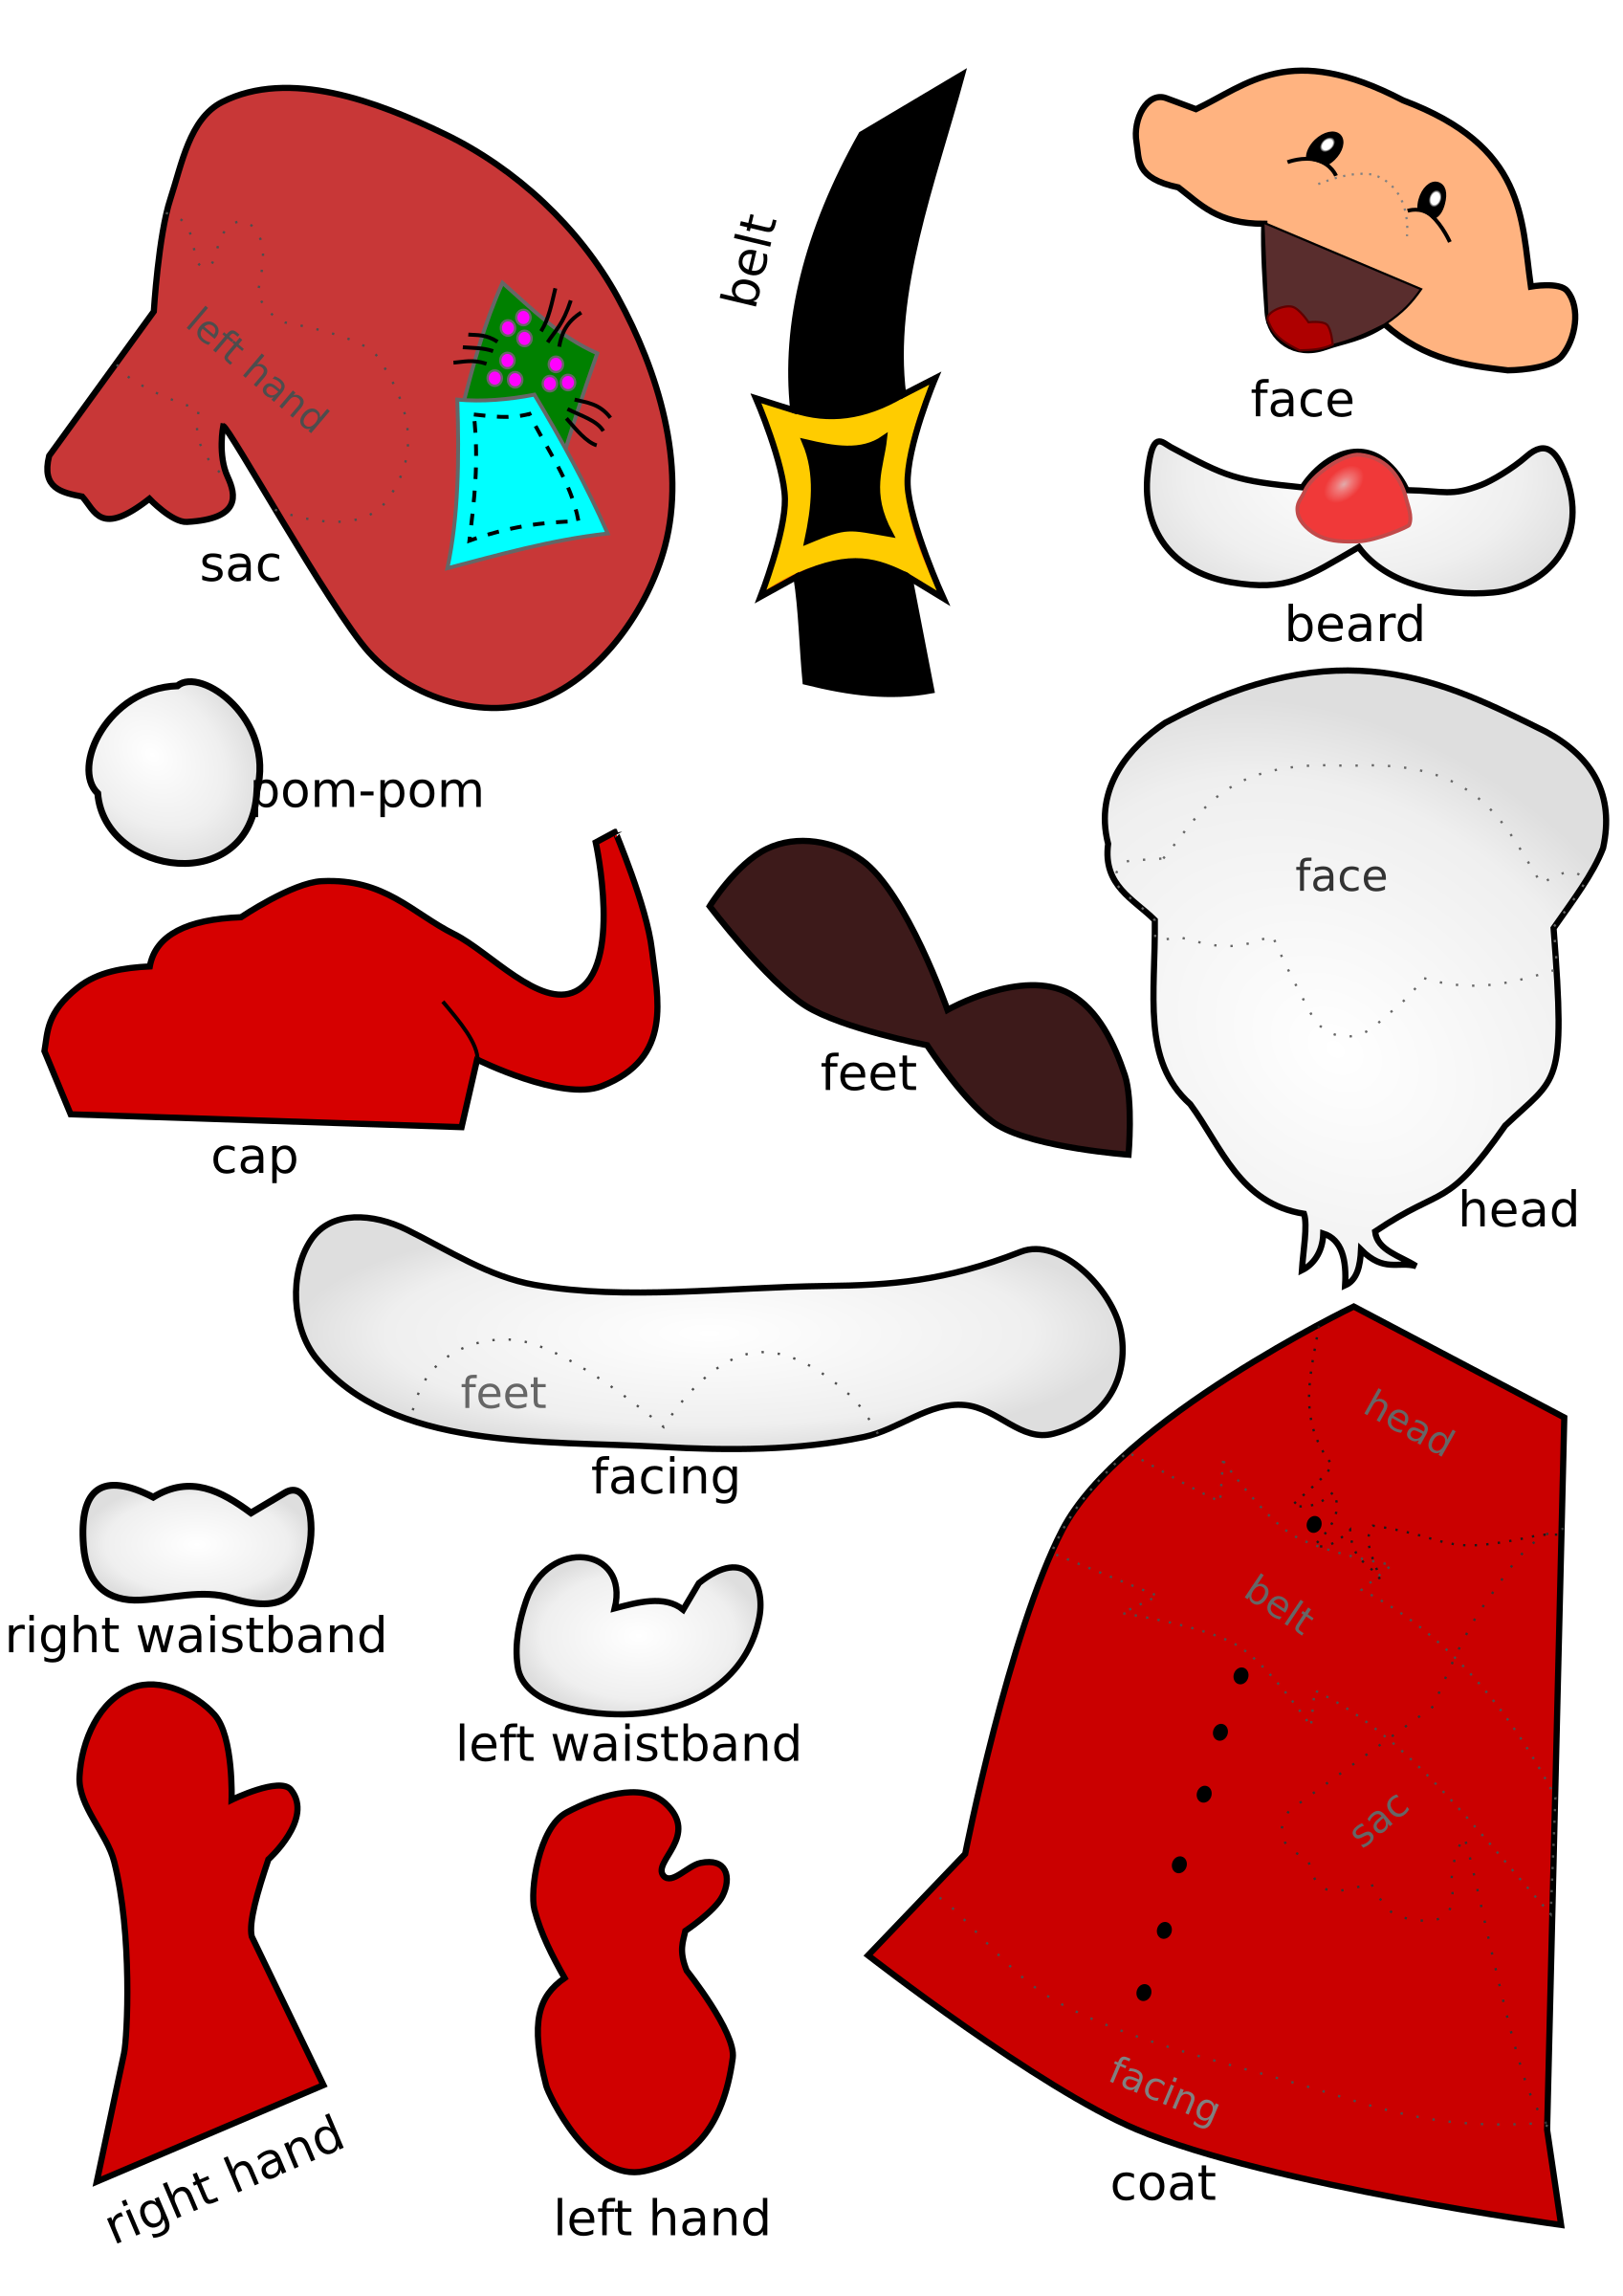 Santa Claus handicraft-sheet by frankes